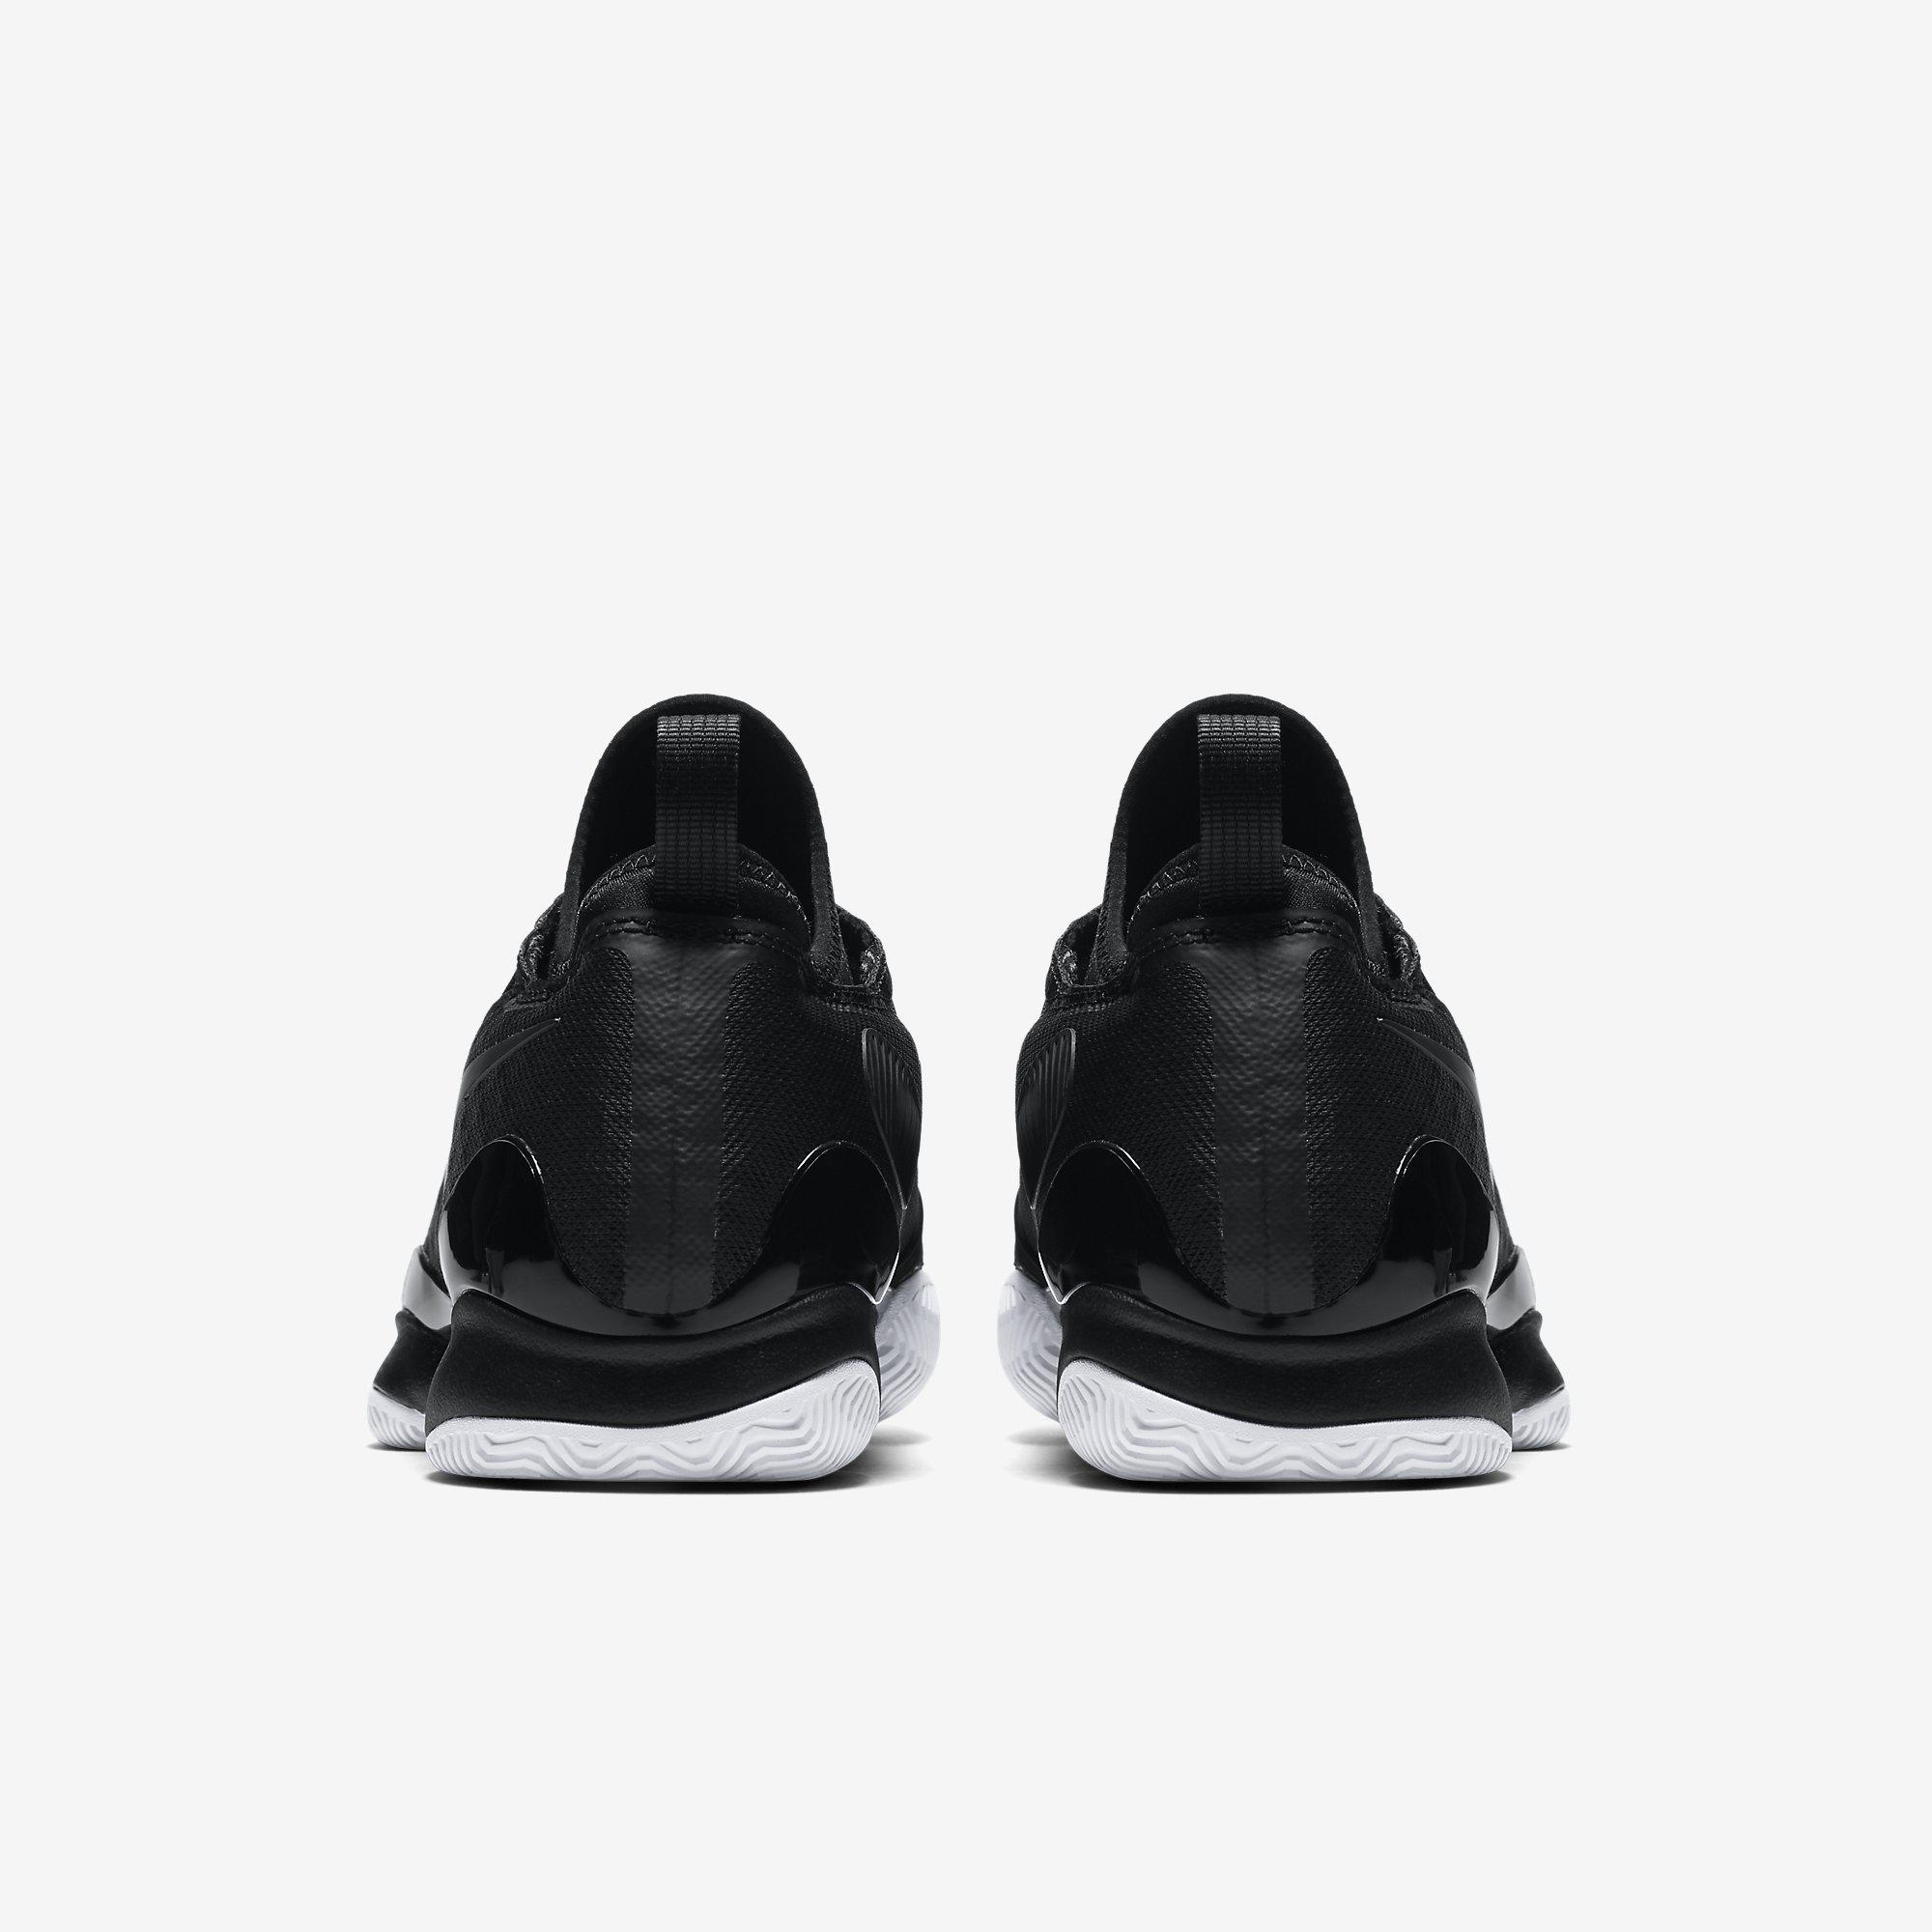 online store 4a571 1a109 Nike Mens Air Zoom Ultra React Tennis Shoes - Black